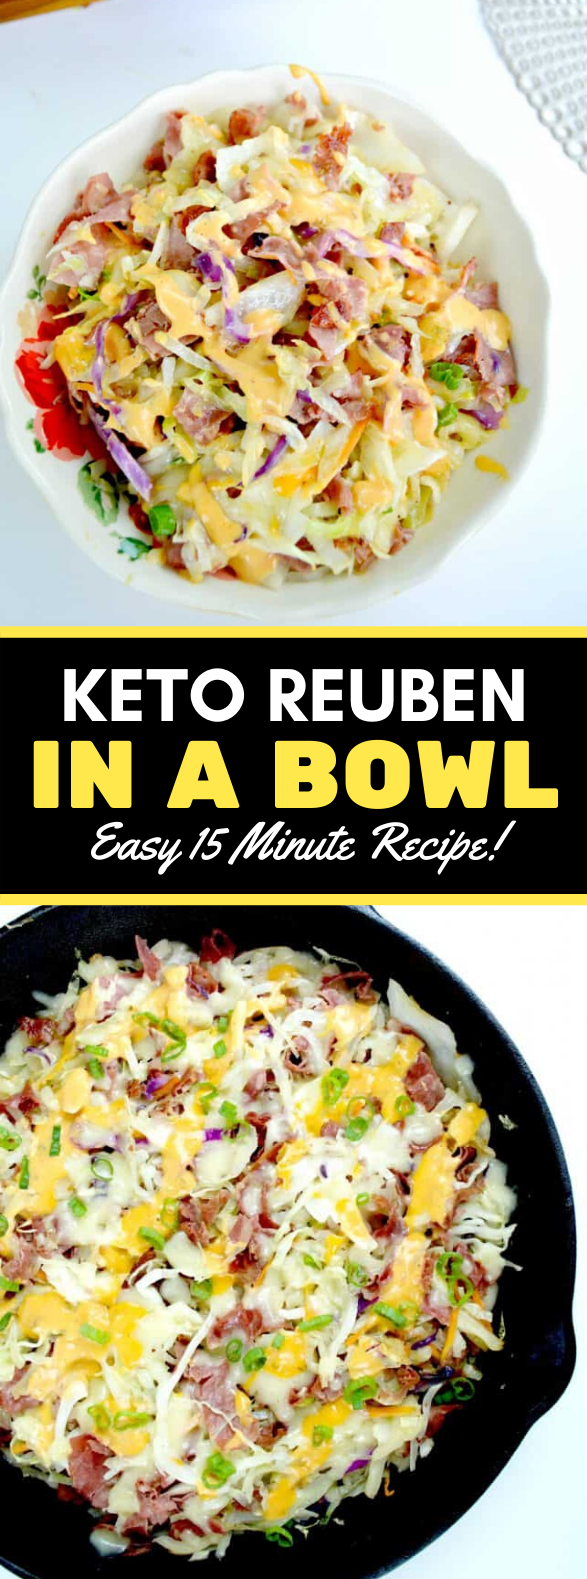 KETO REUBEN IN A BOWL #healthy #nocarb